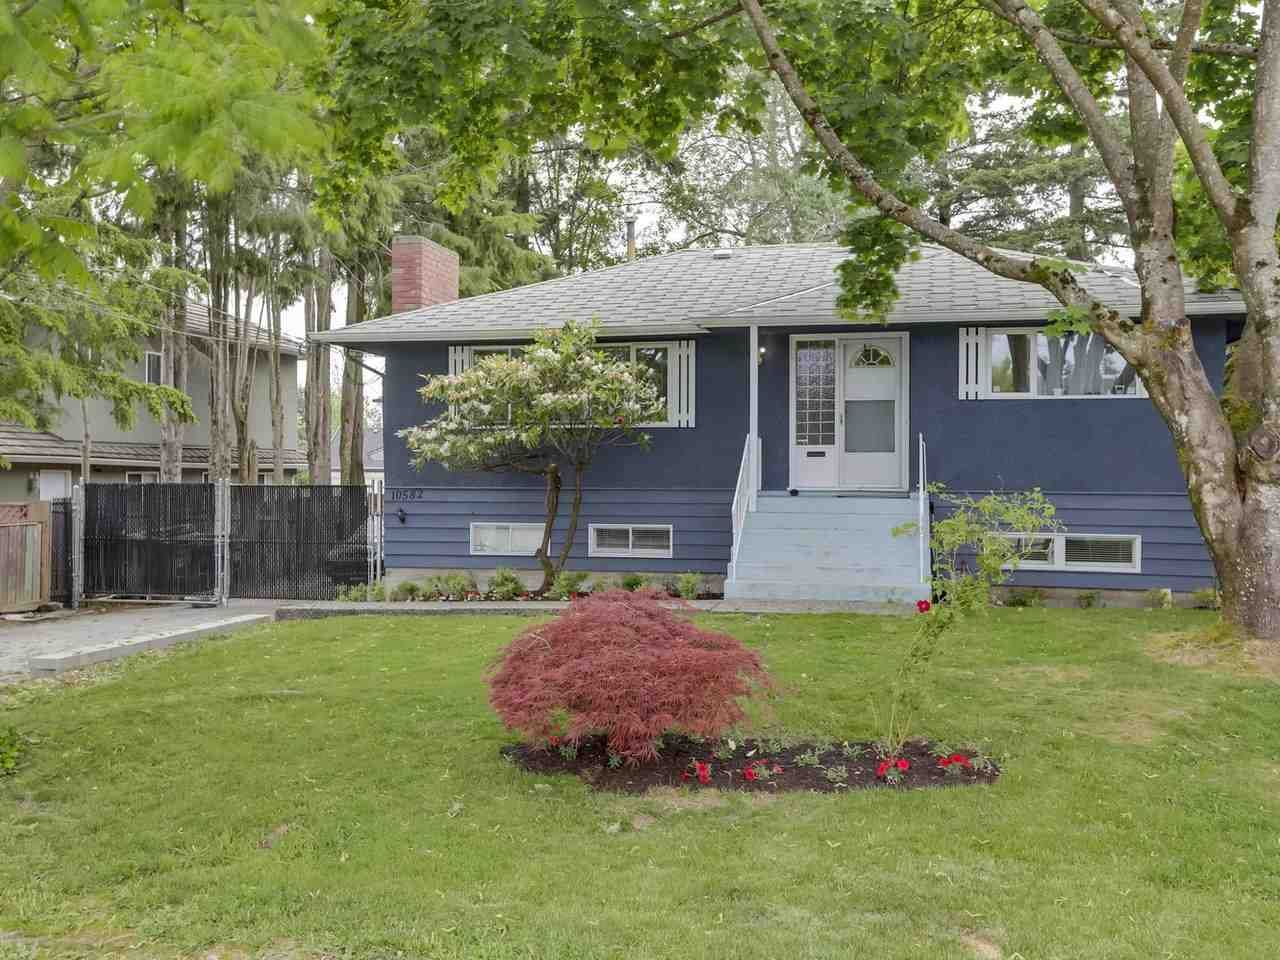 Main Photo: 10582 131A STREET in Surrey: Whalley House for sale (North Surrey)  : MLS®# R2273840